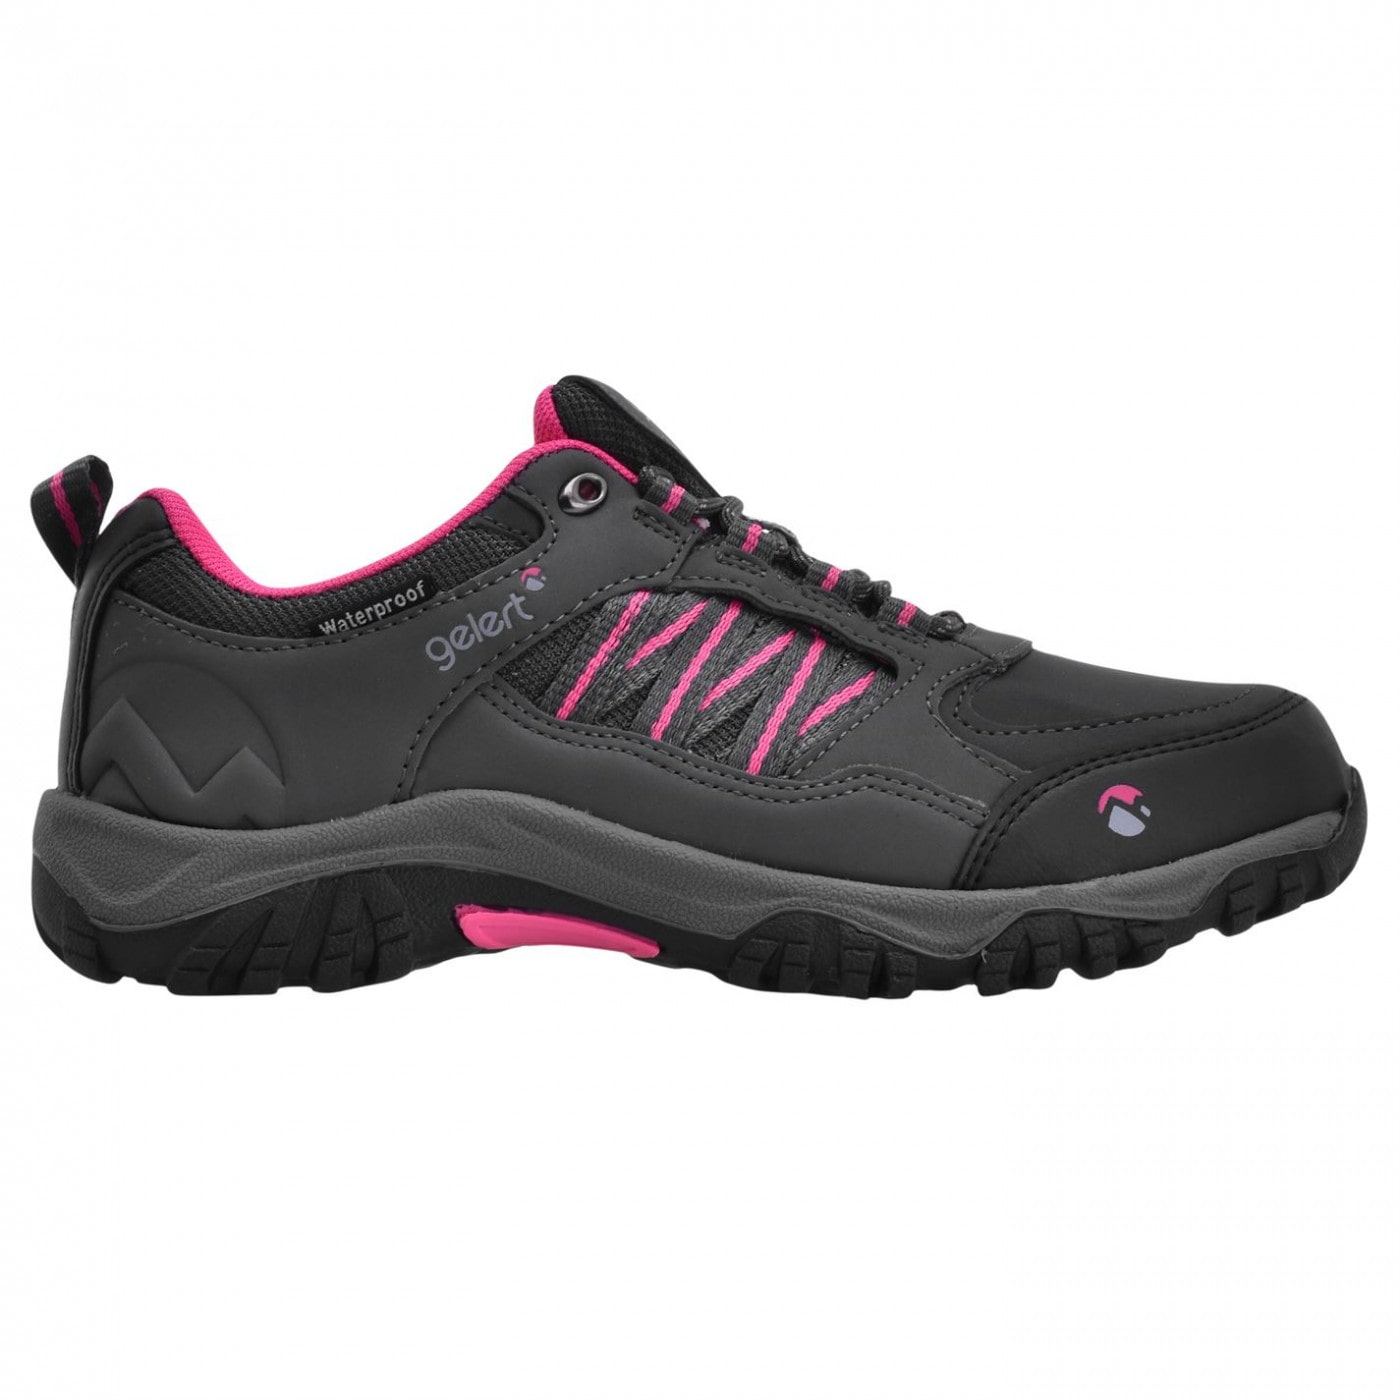 Kids's walking shoes Gelert Horizon Low Waterproof